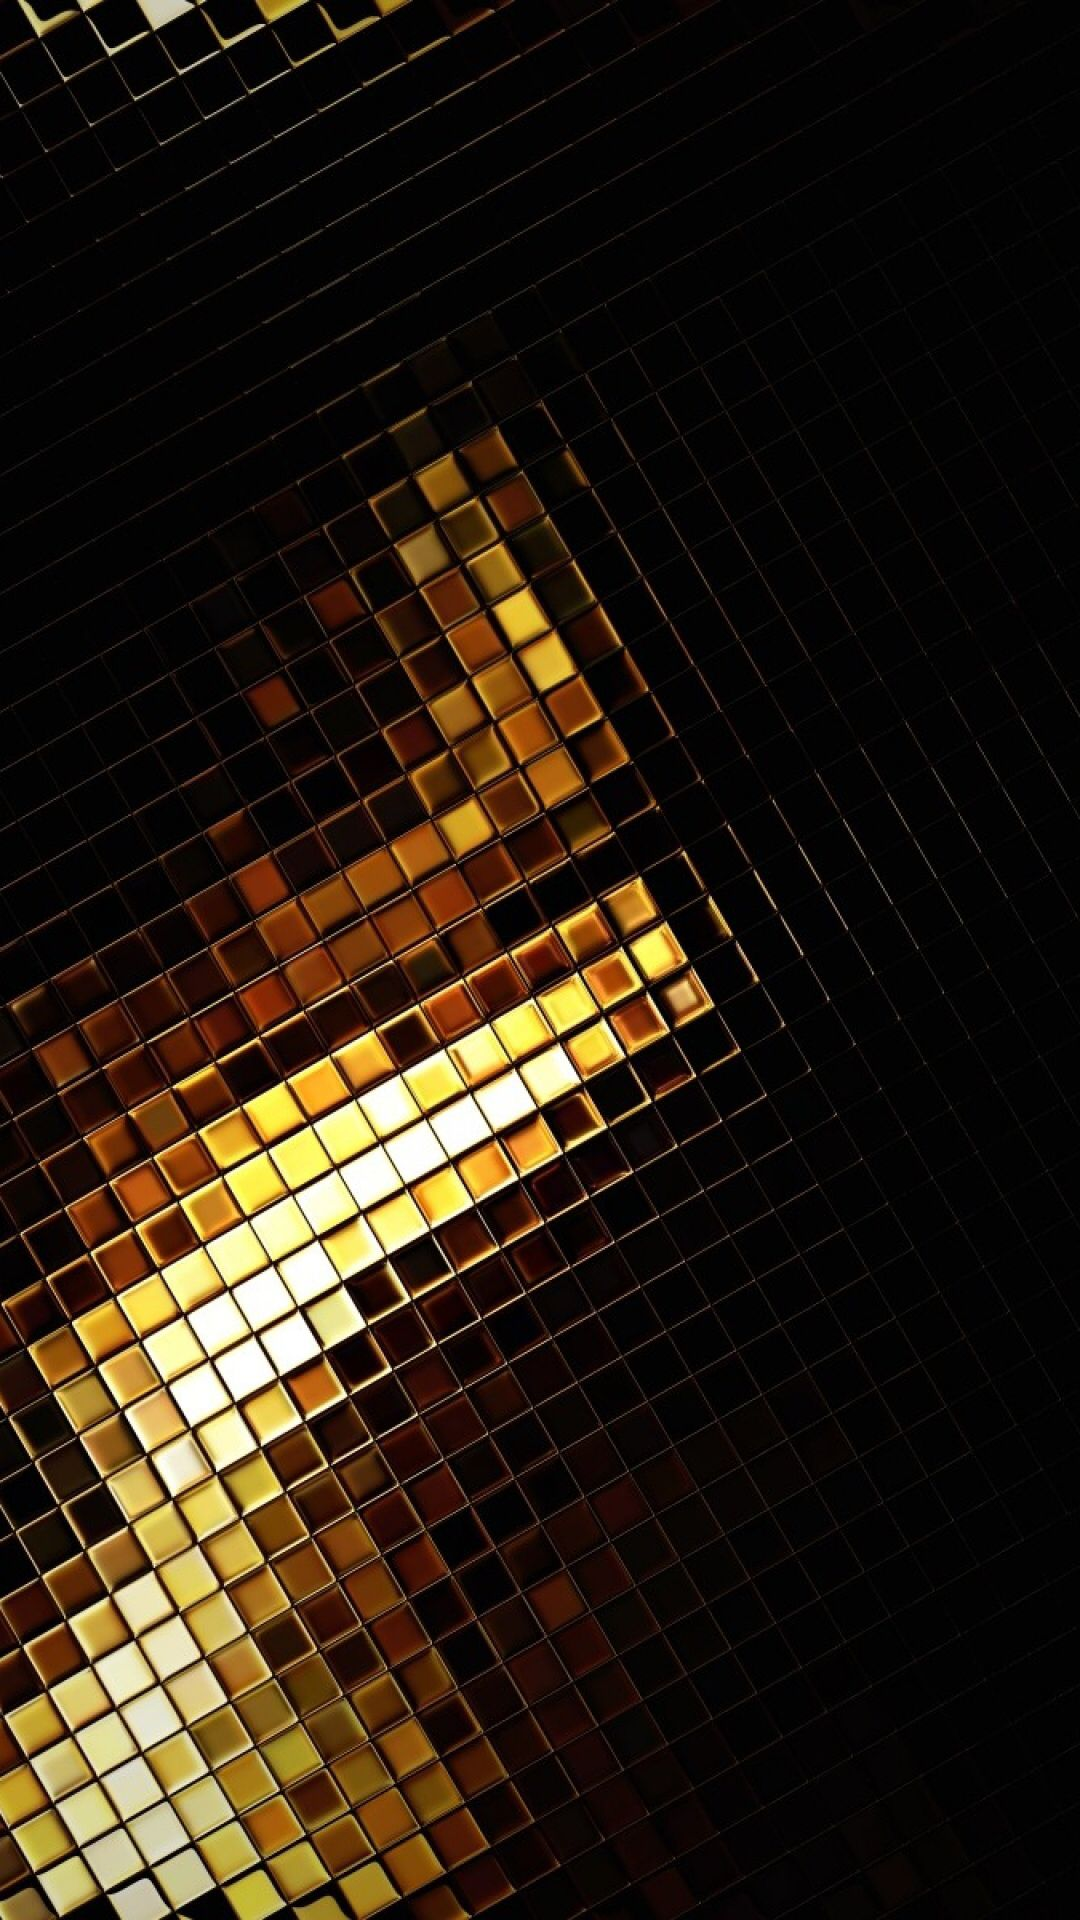 Pin by Amber on Gold Black wallpaper, Shades of gold